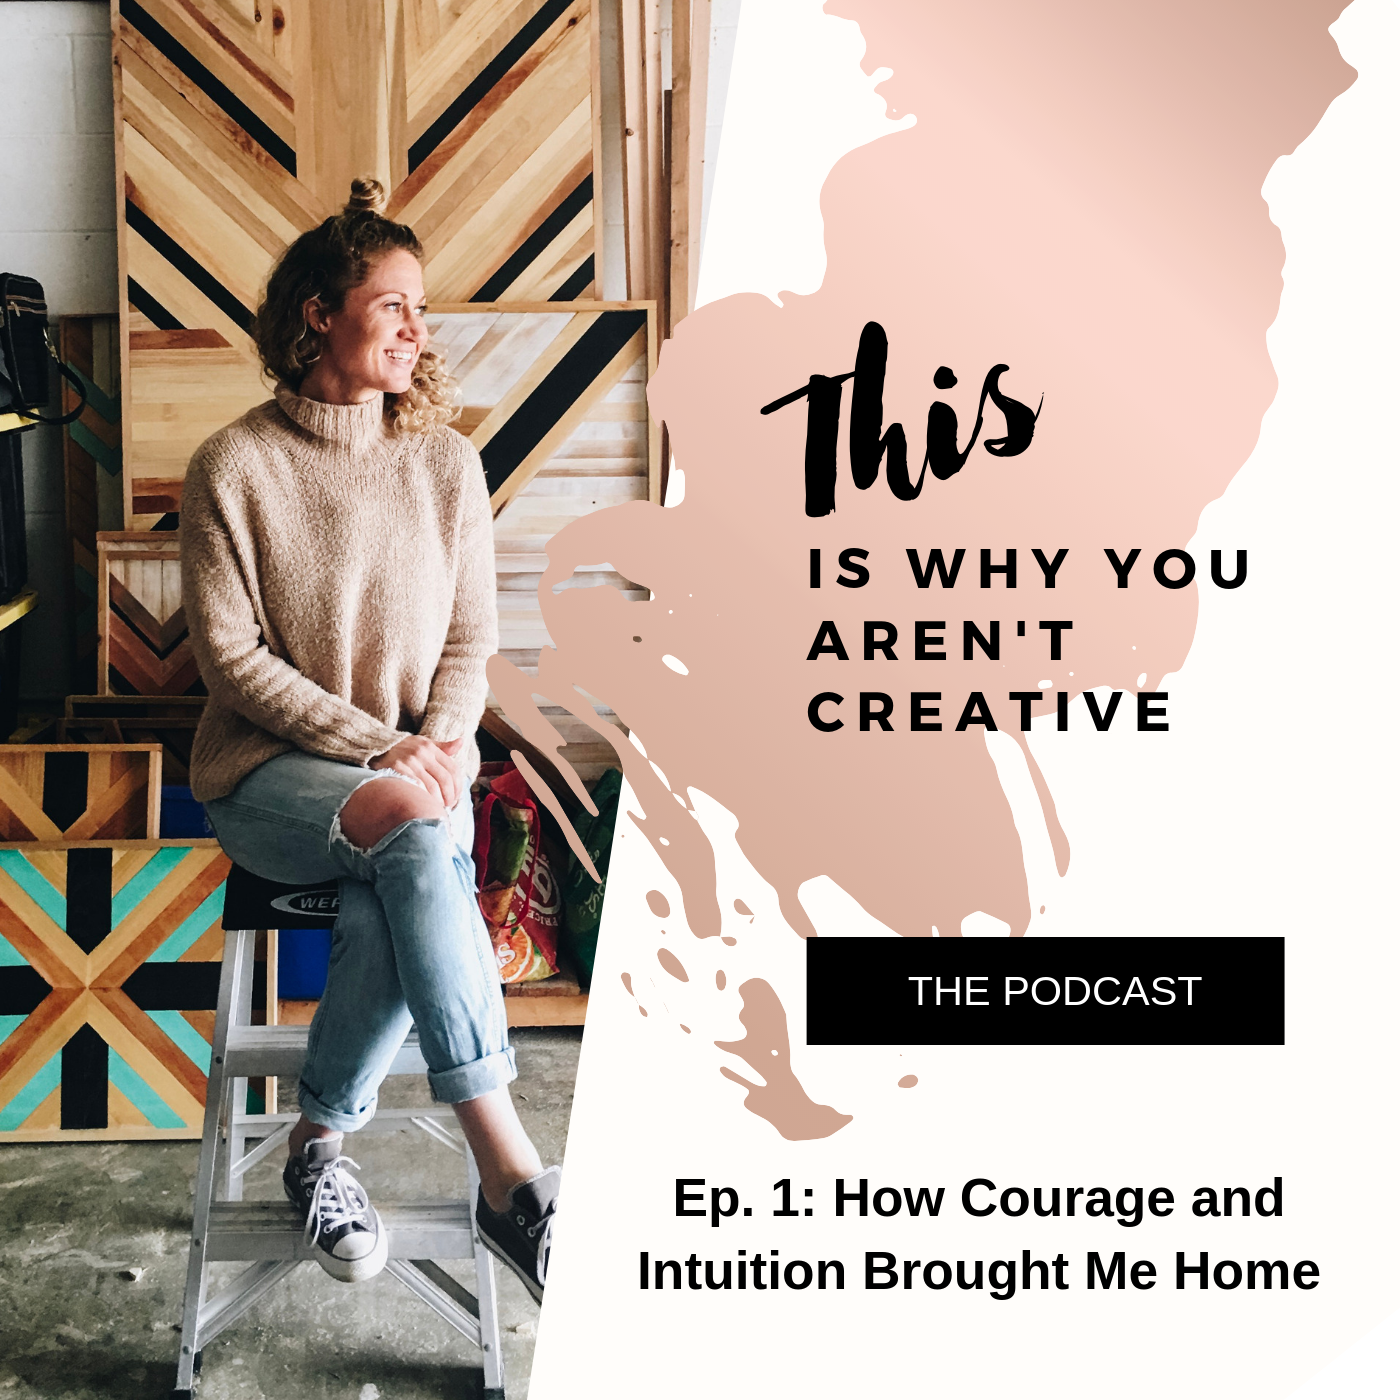 This-Is-Why-You-Arent-Creative-Ep-1-Courage-Intuition.png